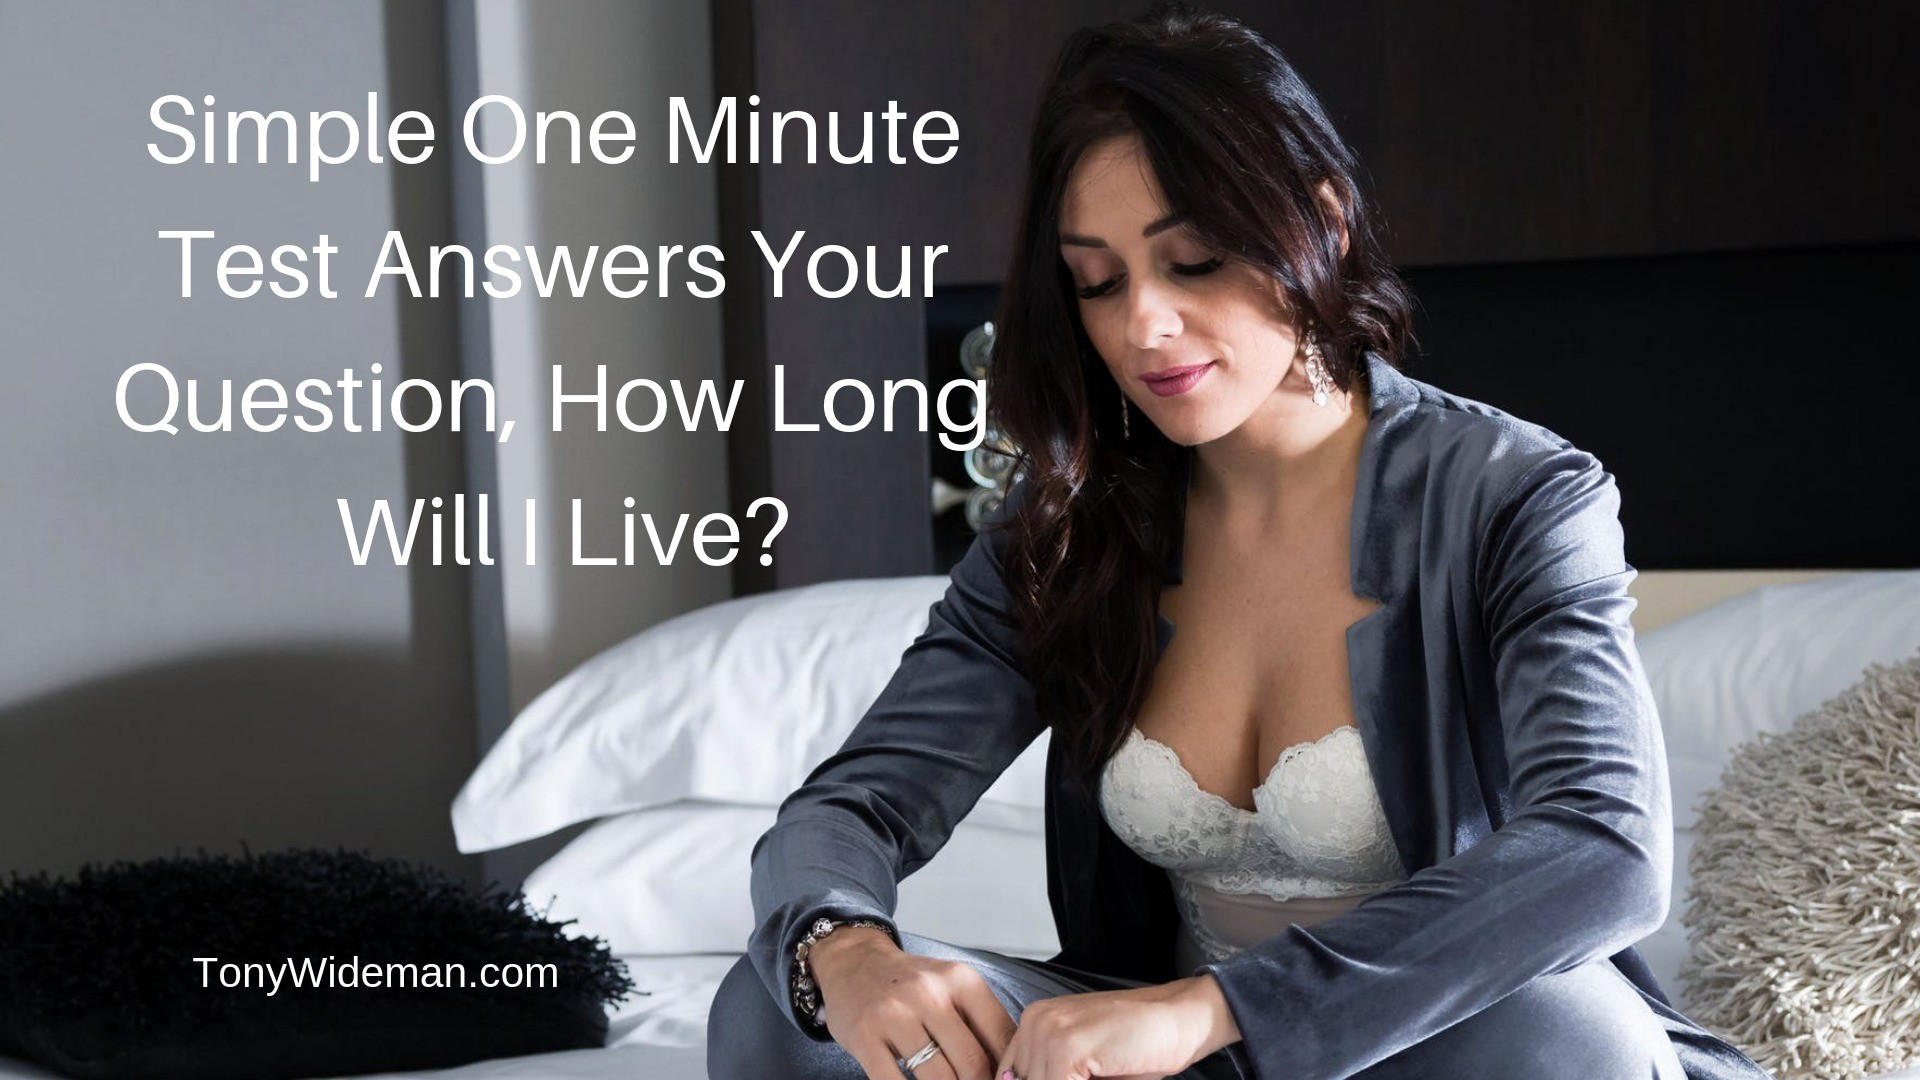 Simple One Minute Test Answers Your Question, How Long Will I Live?